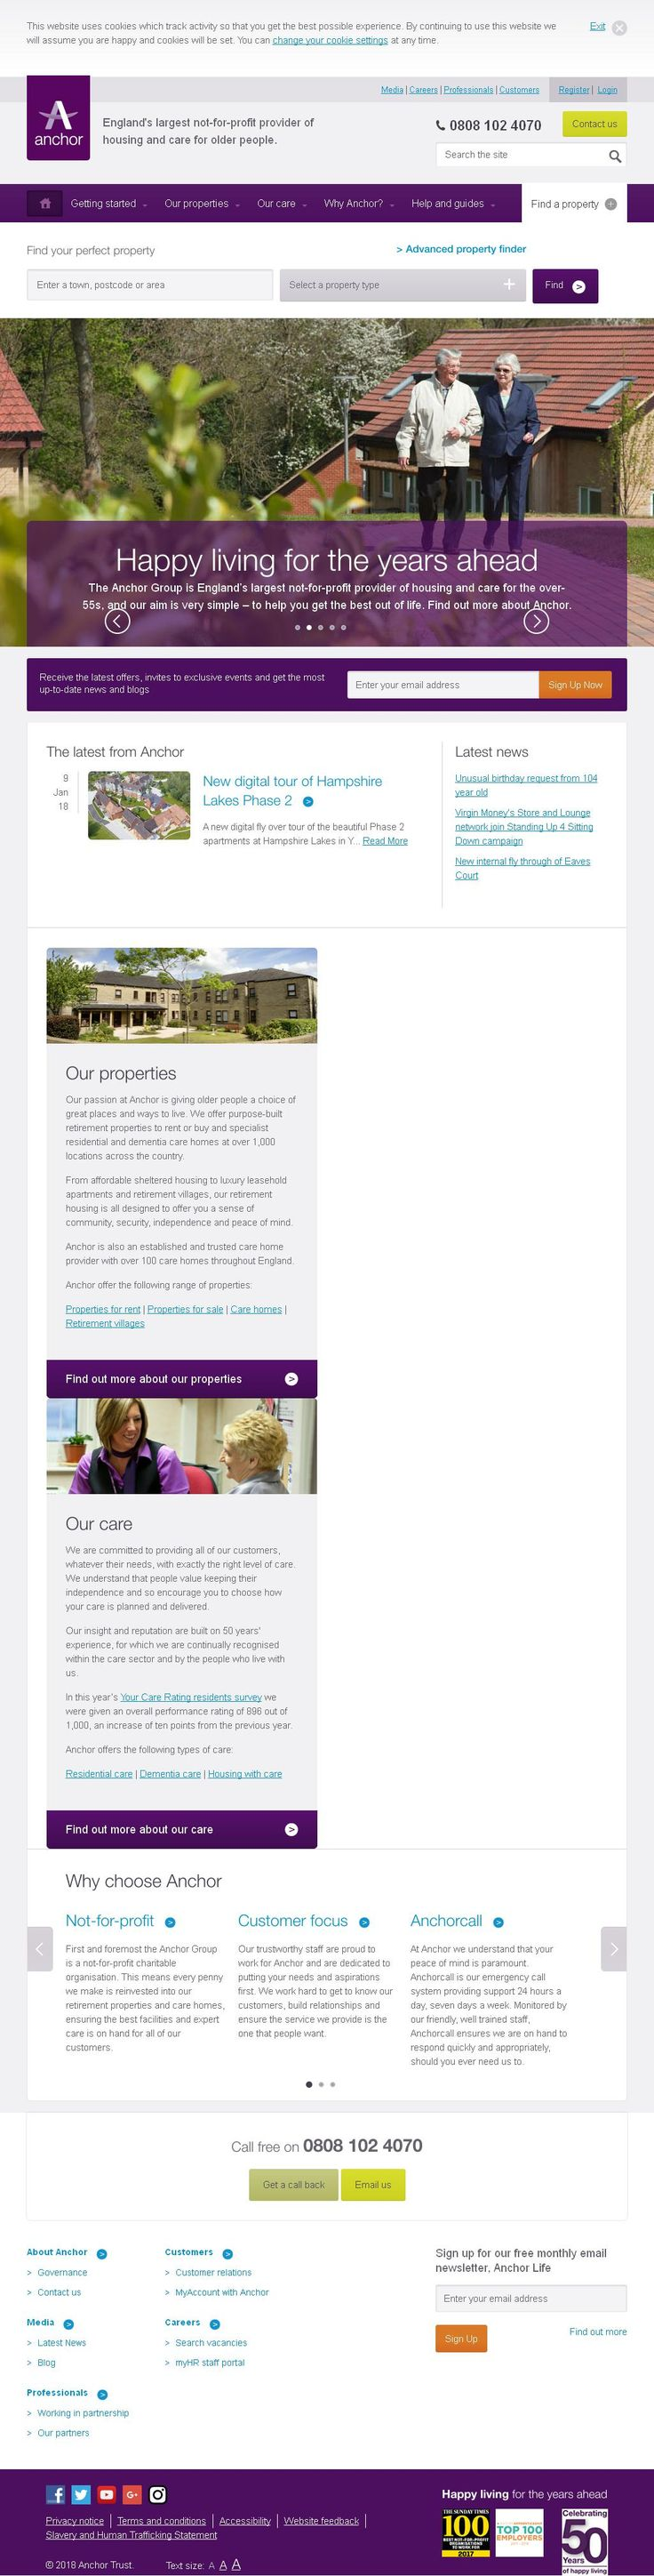 Anchor Trust Housing Associations Societies Trusts & Co-Operatives Flat 26/Willow Court Bradbury Road  Winsford Cheshire CW7 3HS | To get more infomration about Anchor Trust, Location Map, Phone numbers, Email, Website please visit http://www.HaiUK.co.uk